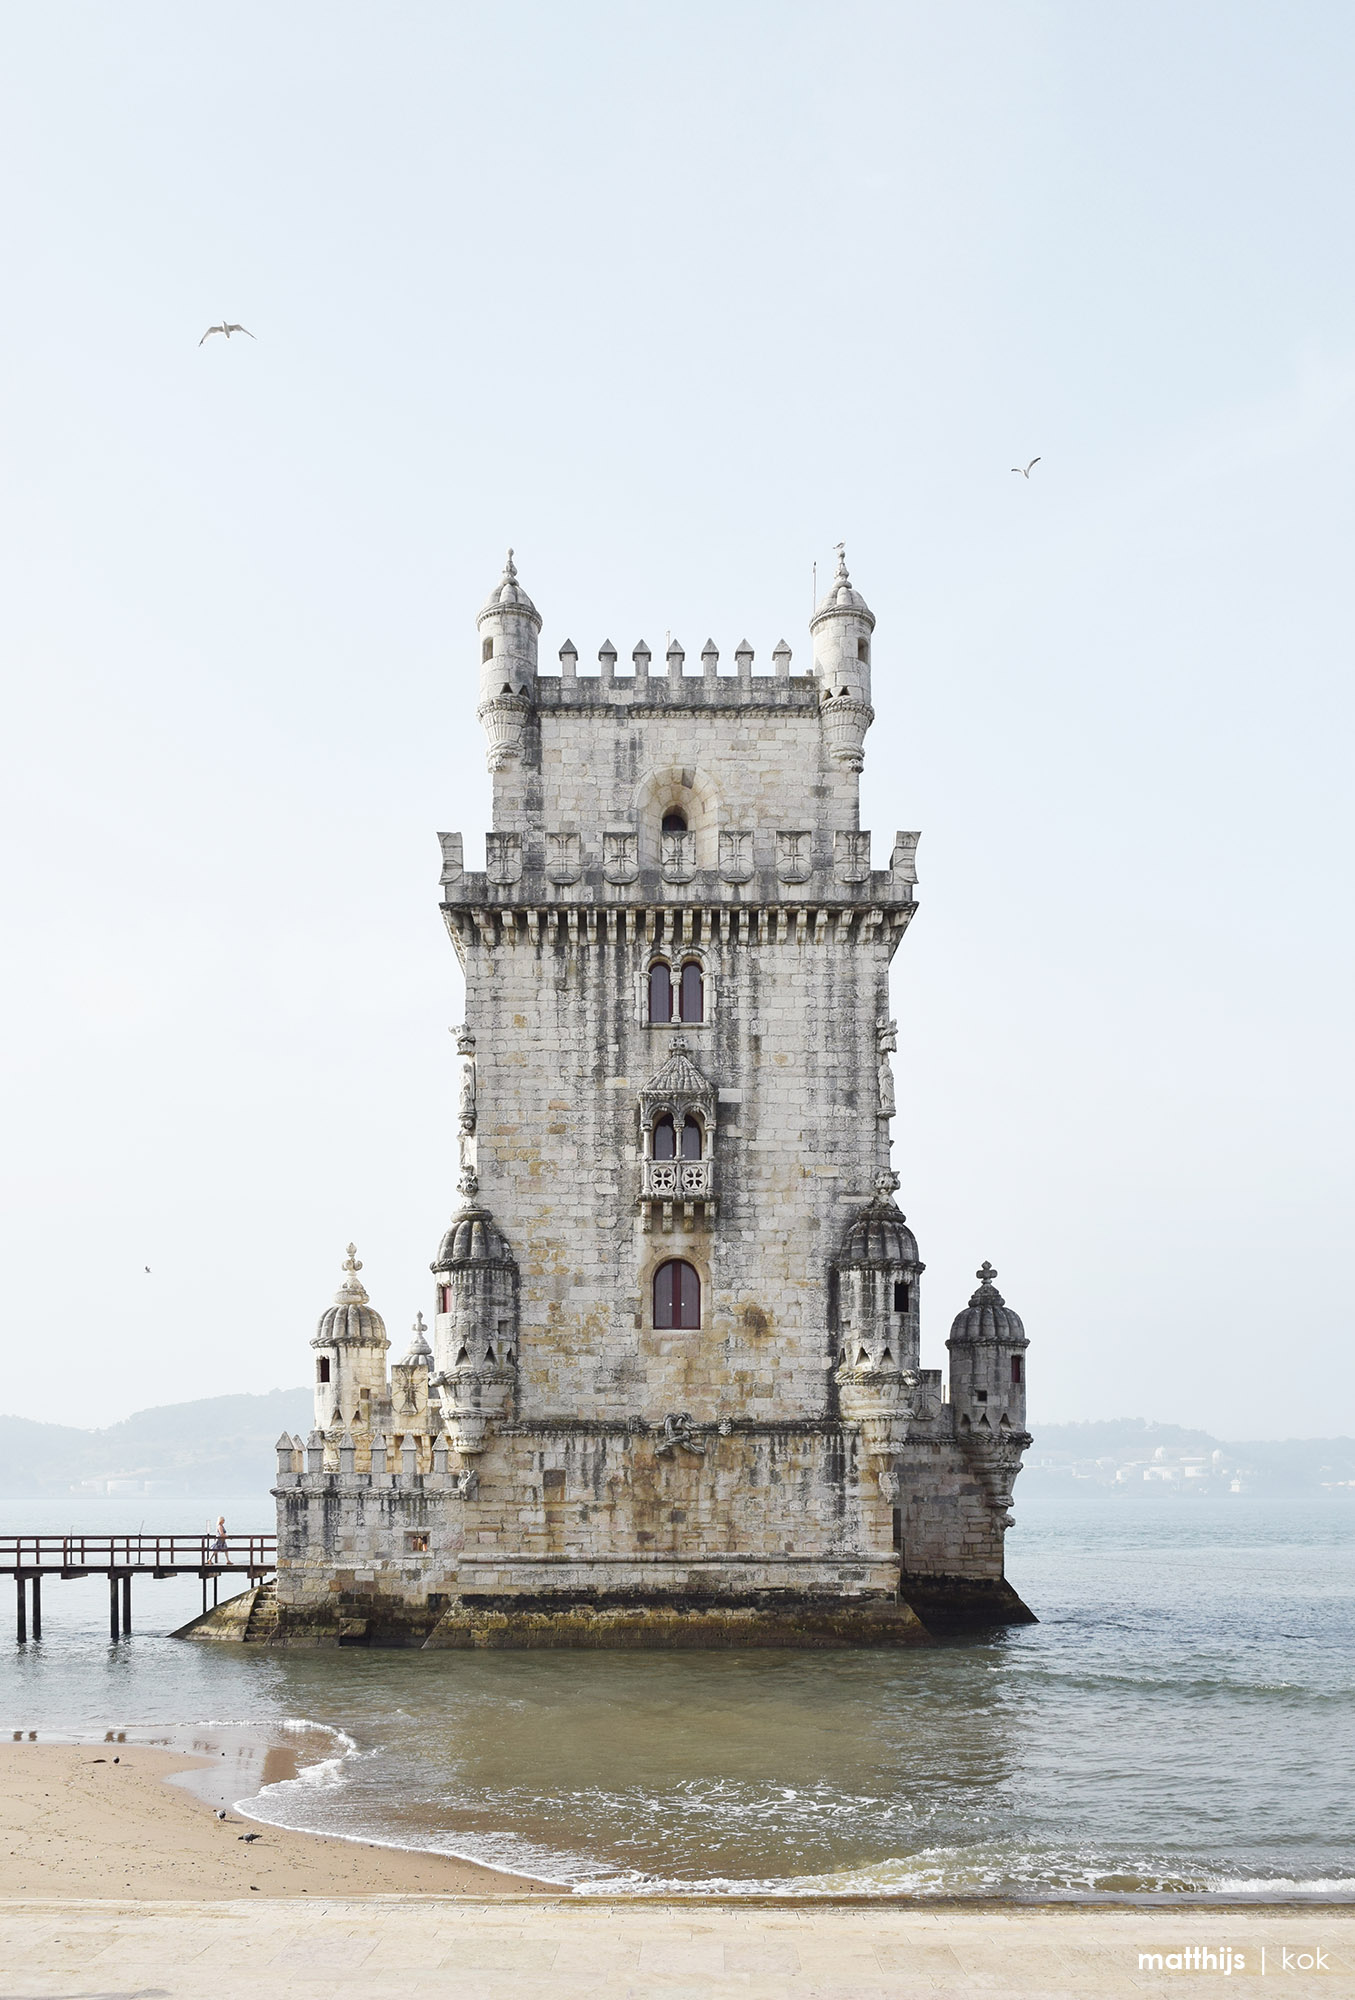 Torre de Belém, Lisbon, Portugal | Photo by Matthijs Kok